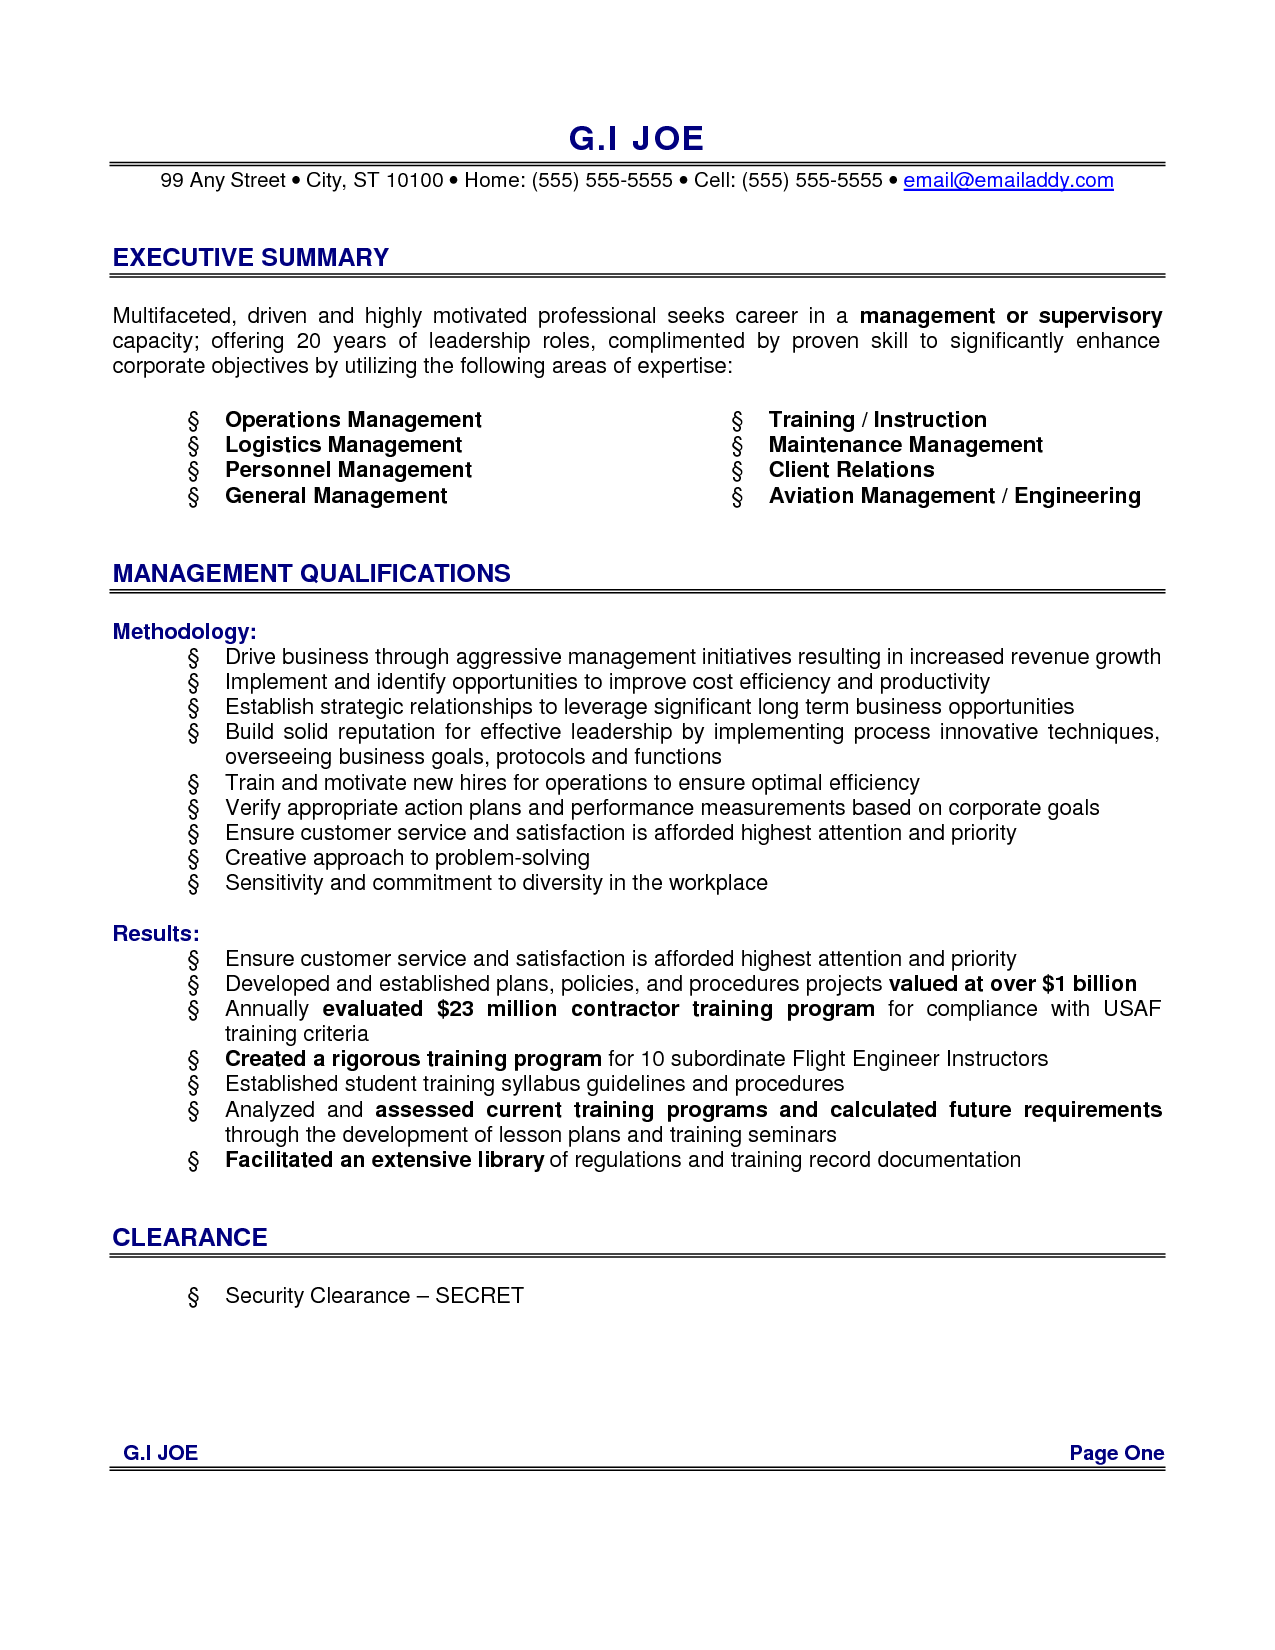 resume examples for executive summary with management qualifications executive resume example as writing guidelines - Management Qualifications For Resume